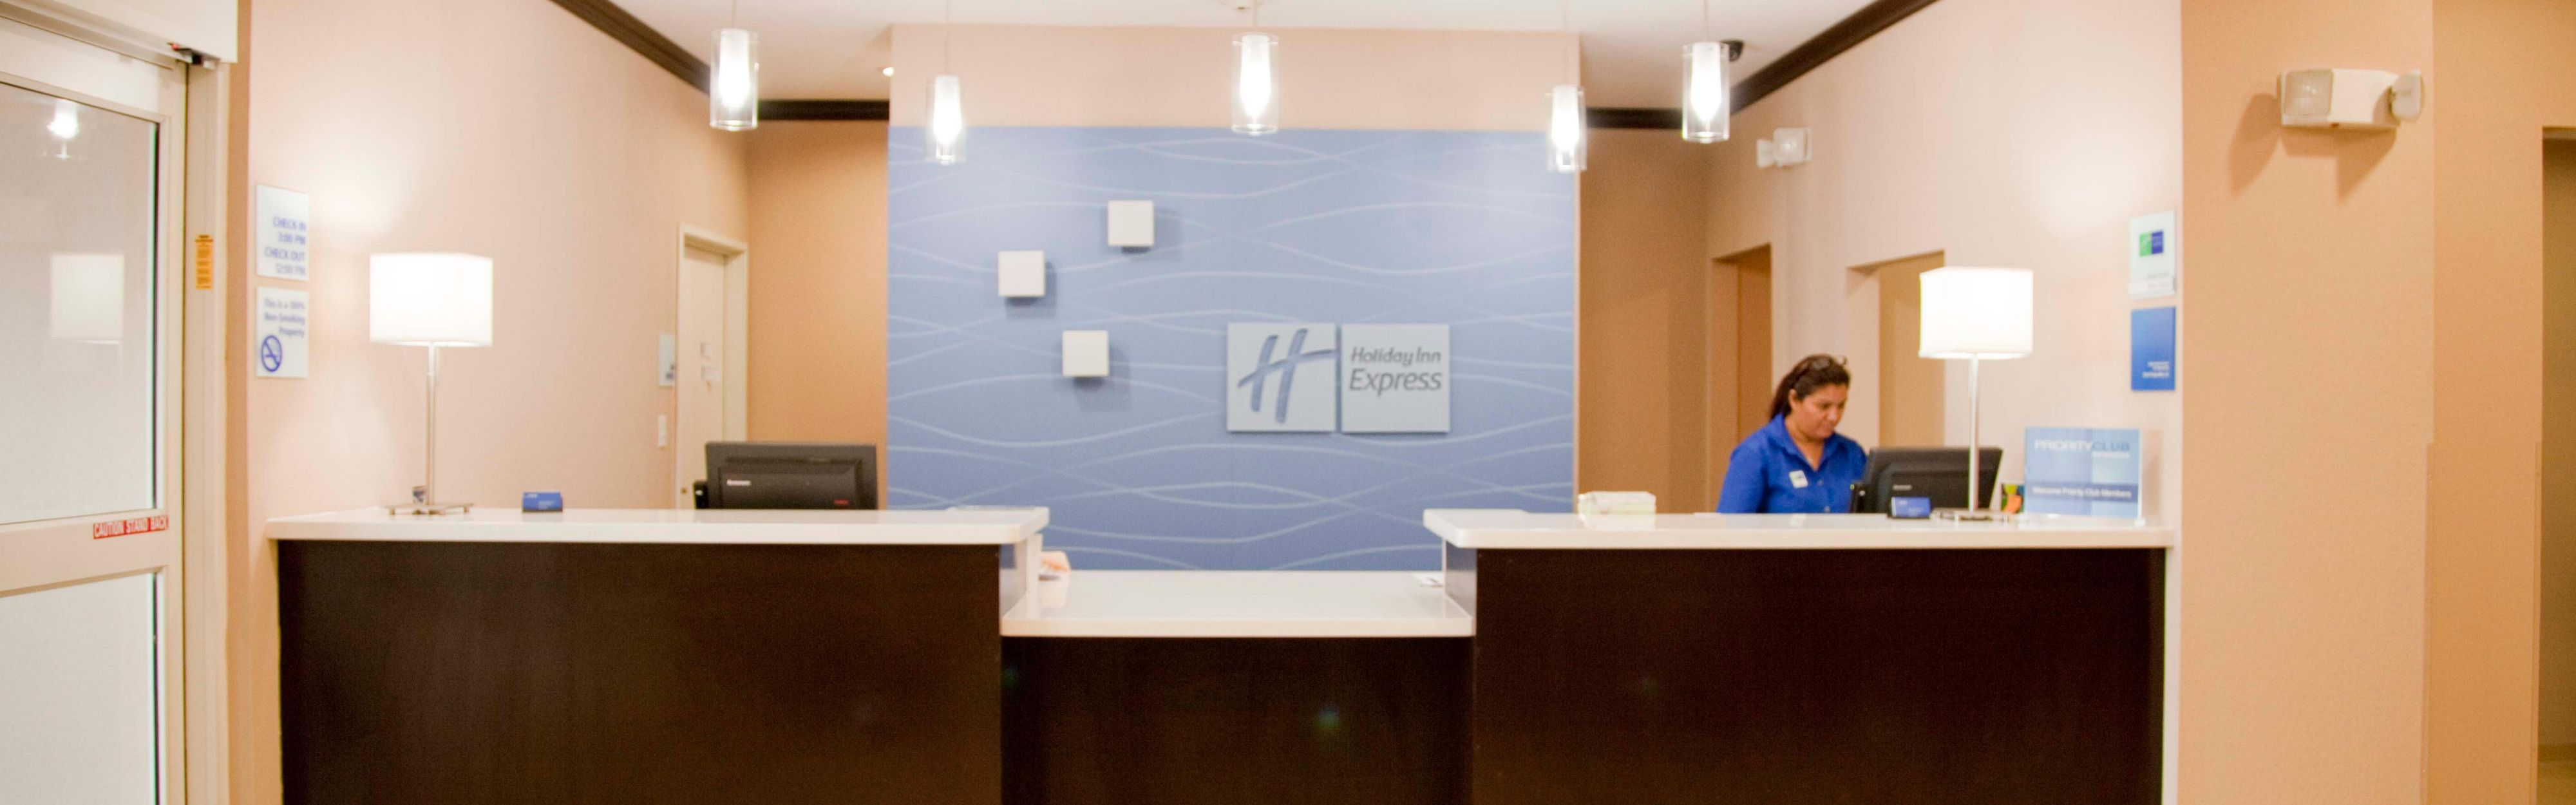 Holiday Inn Express & Suites Port Lavaca image 0